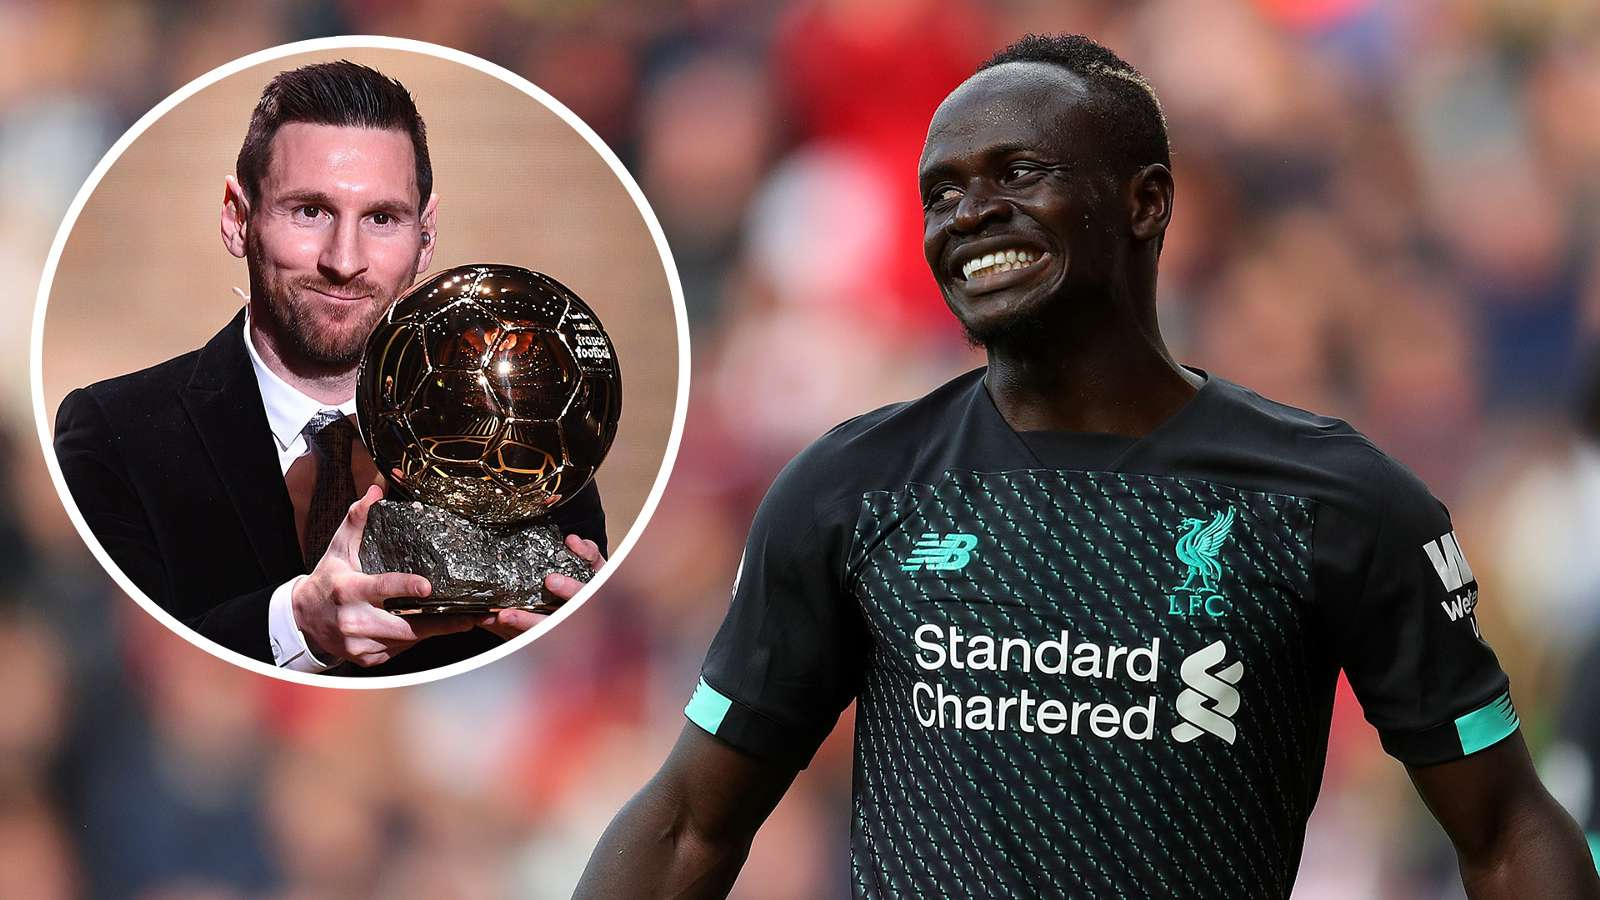 Lionel Messi: It's a shame Mane finished fourth in Ballon d'Or voting